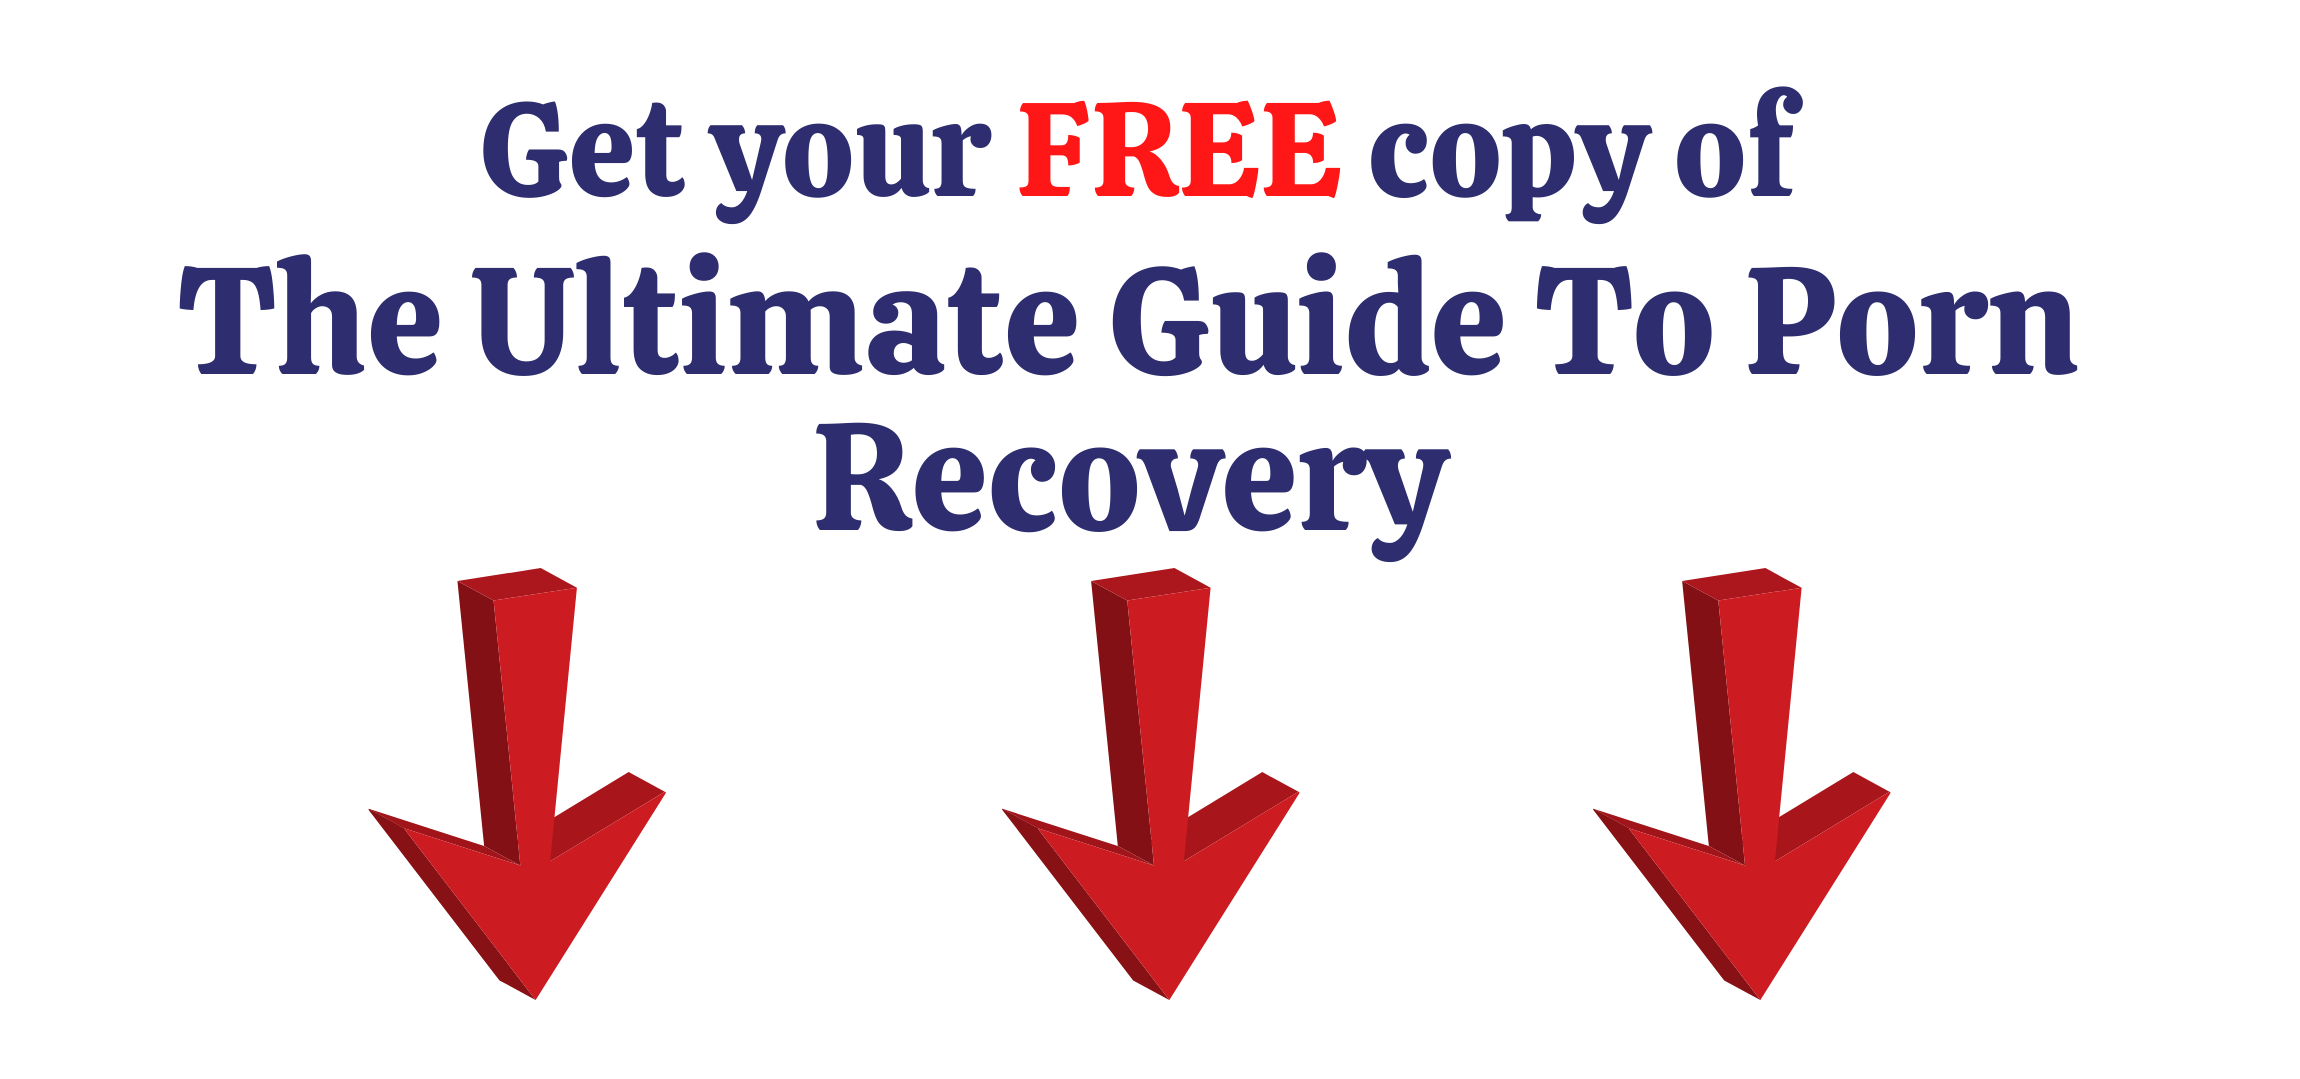 Get your free copy of the ultimate guide to porn recovery